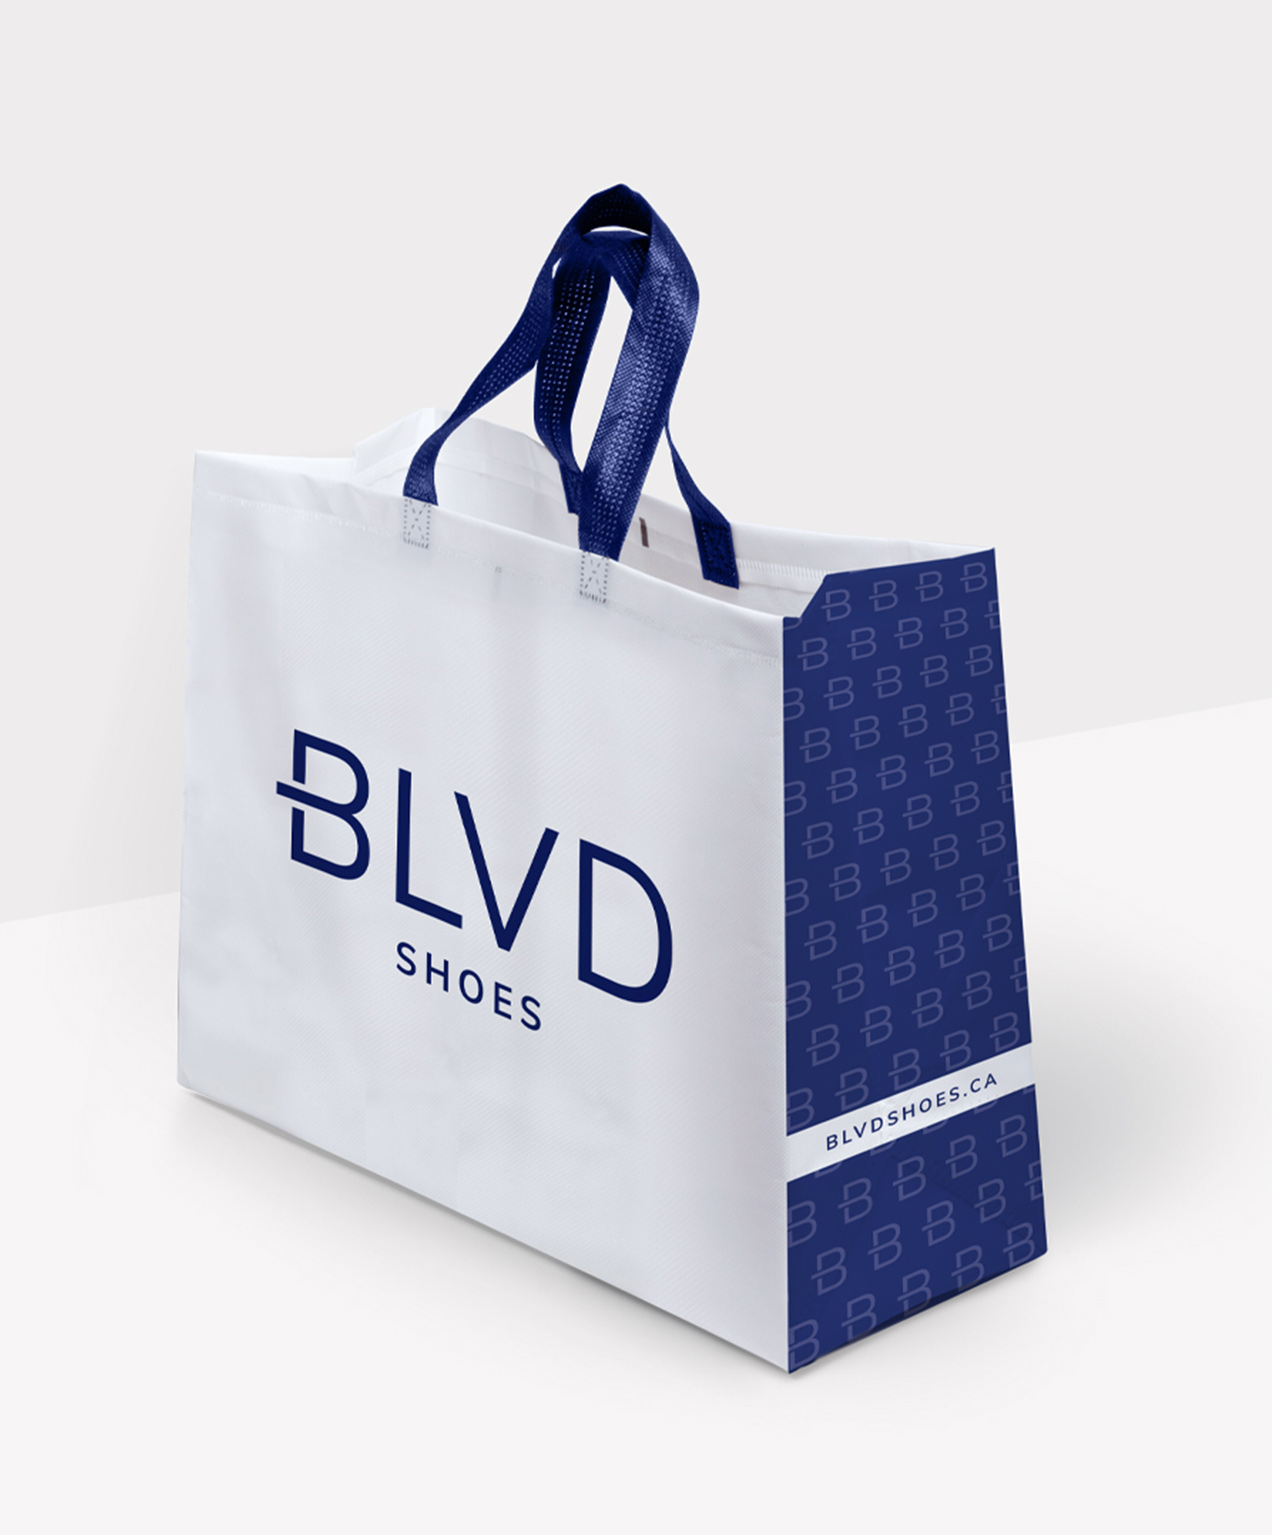 retail shoe store marketing blvd shoes custom shopping bag